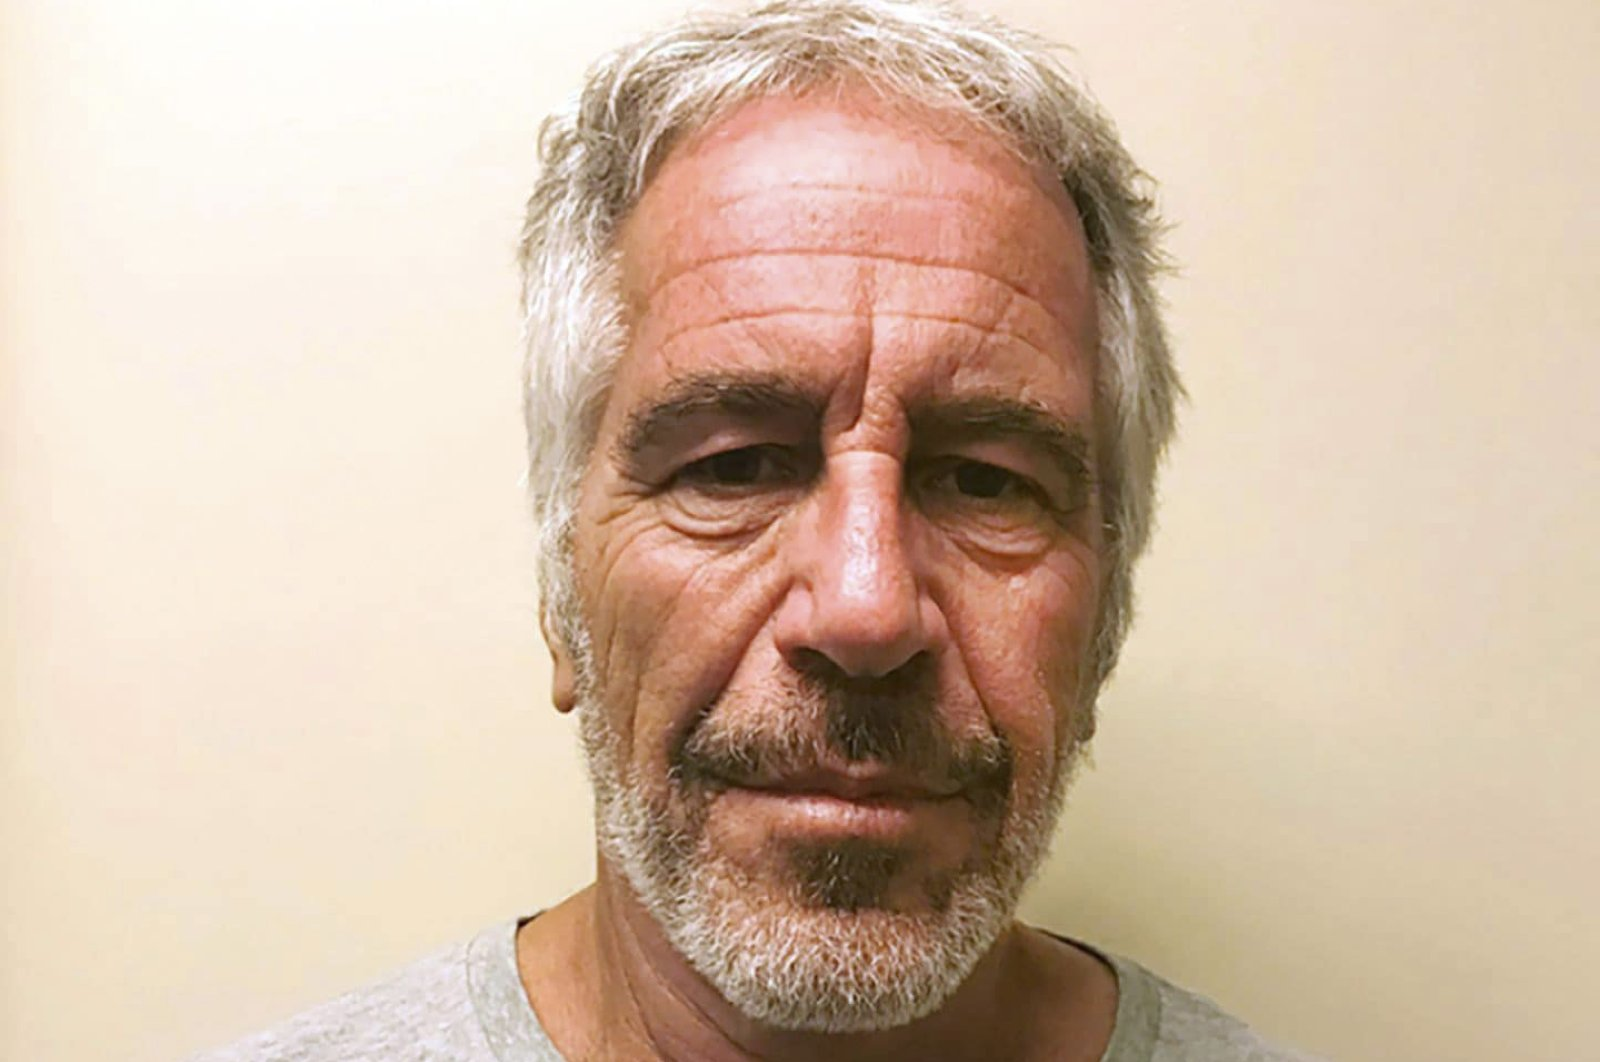 This file photo, provided by the New York State Sex Offender Registry, shows Jeffrey Epstein, March 28, 2017. (New York State Sex Offender Registry via AP)